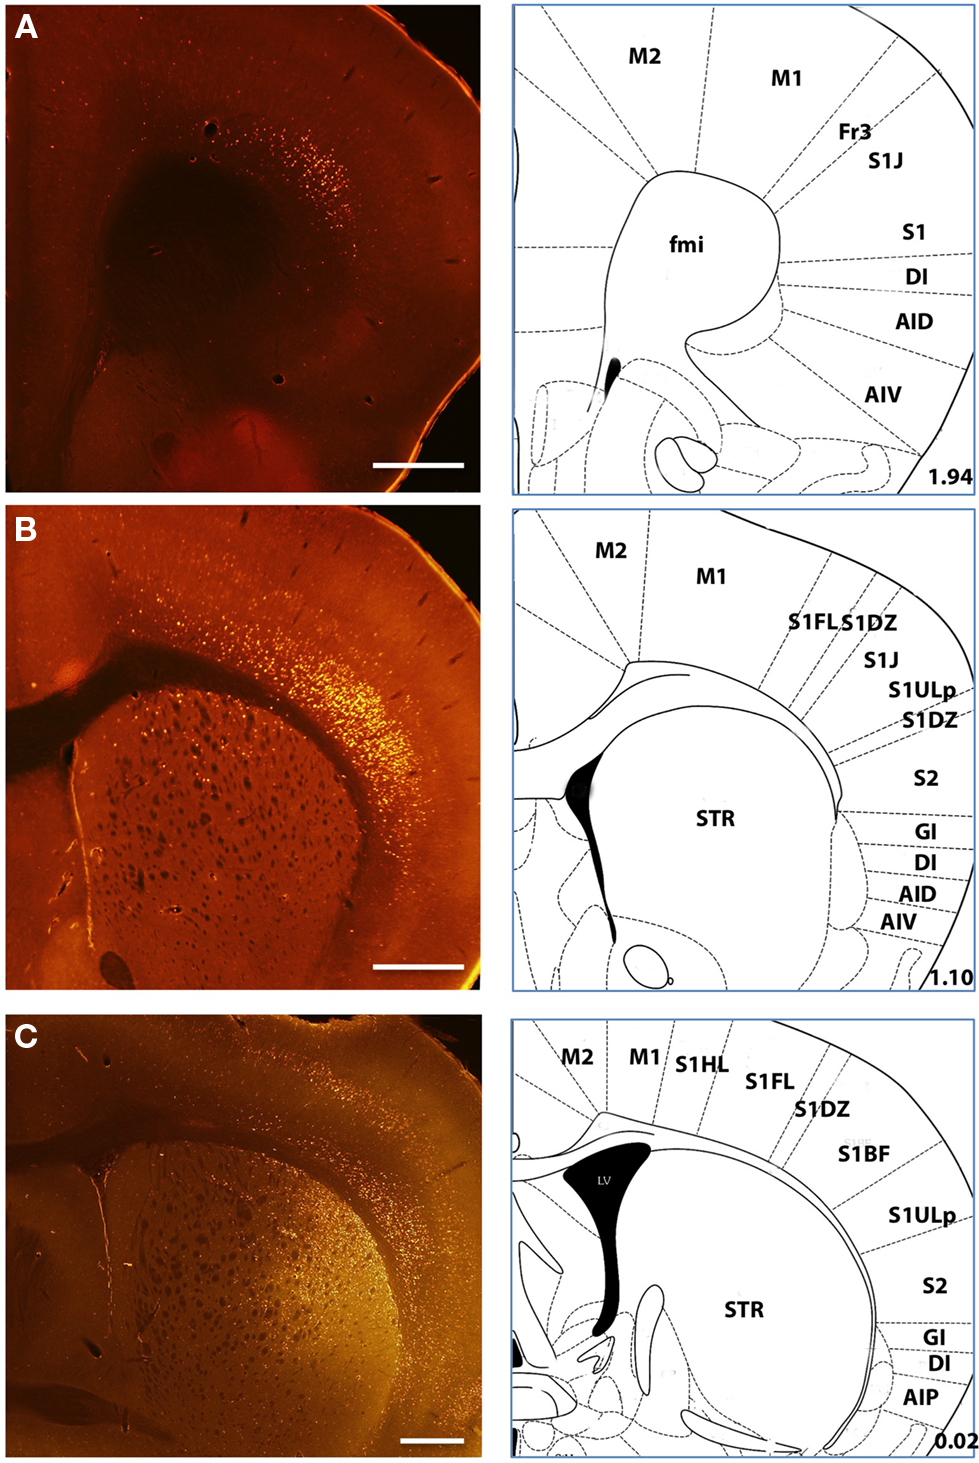 Frontiers Inputs To The Dorsal Striatum Of Mouse Reflect Parallel Circuit Examples Circuits